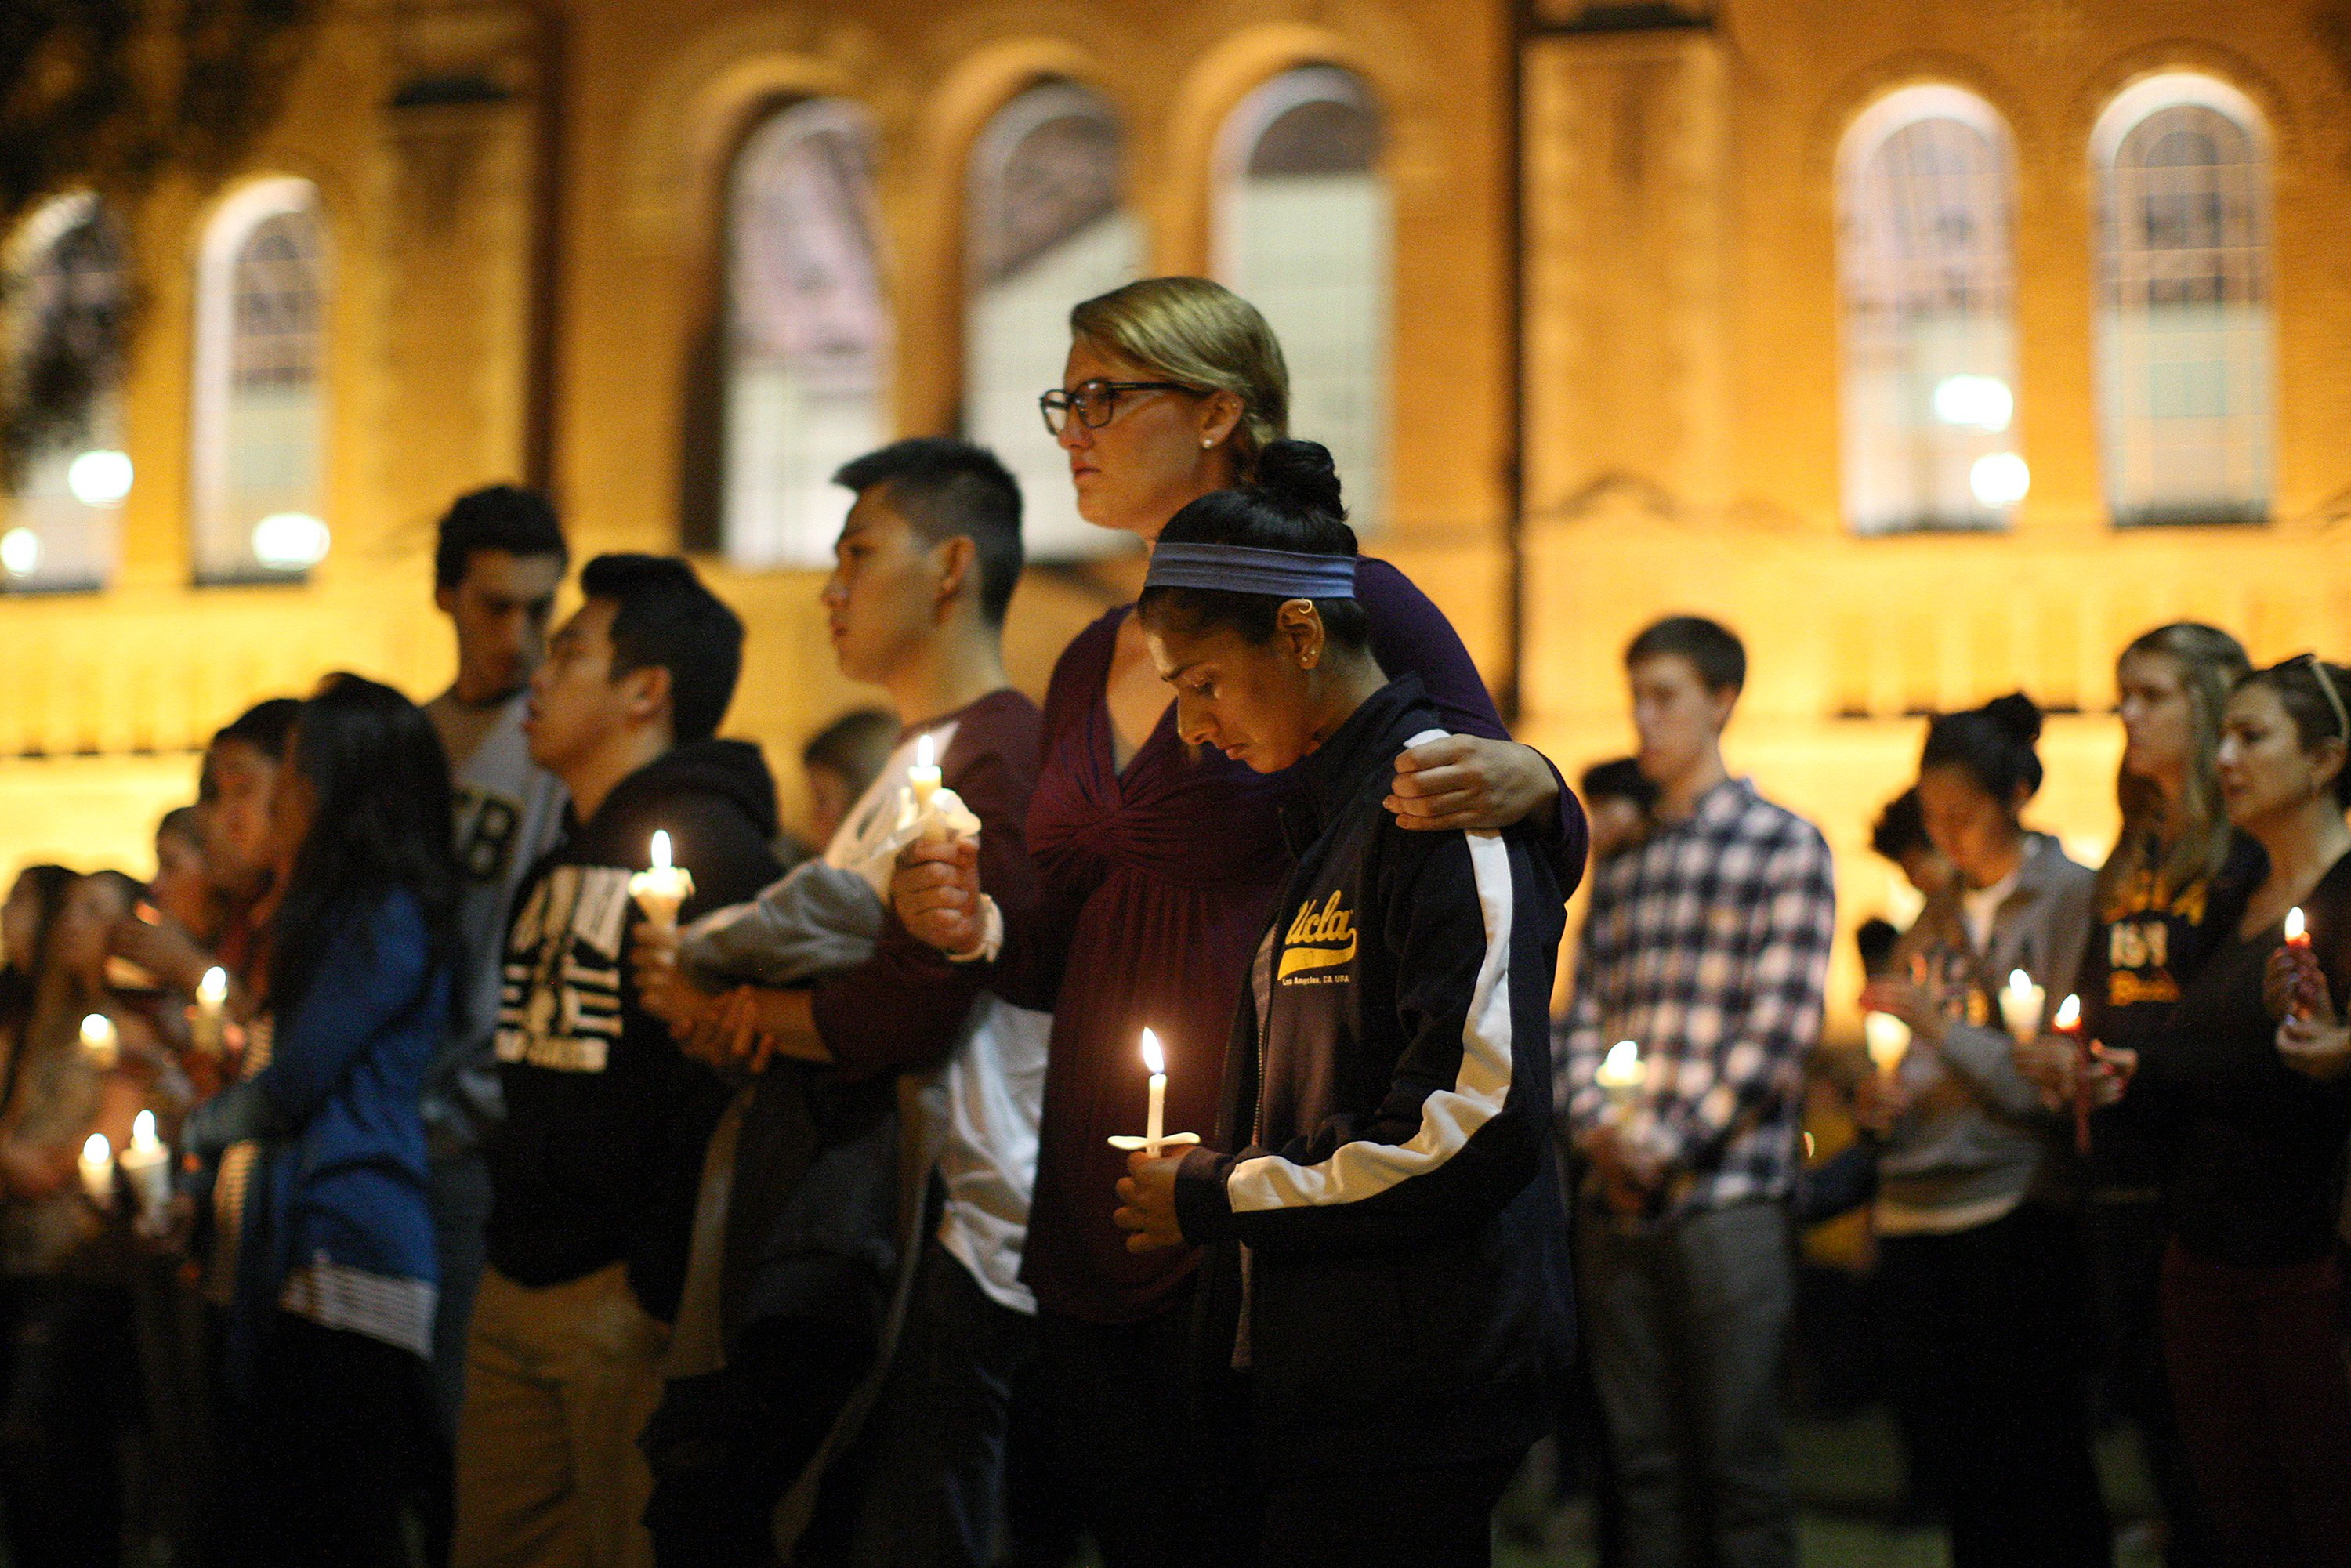 Students of UCSB and UCLA mourn at a candlelight vigil at UCLA for the victims of a killing rampage over the weekend on May 26, 2014 in Los Angeles.